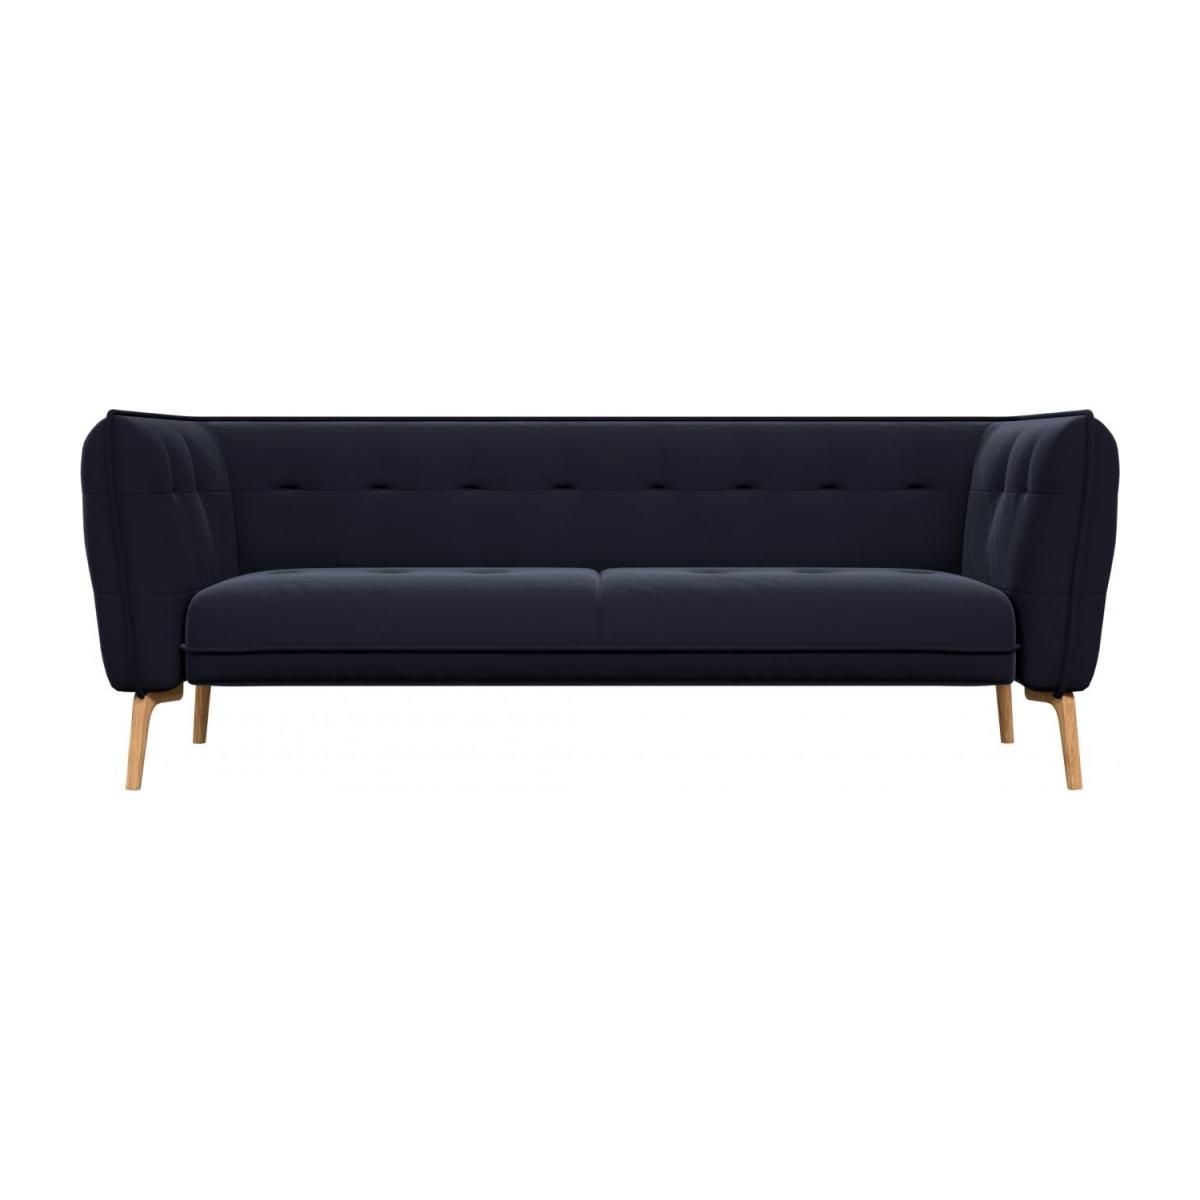 3 seater sofa in Super Velvet fabric, dark blue and natural oak feet n°2